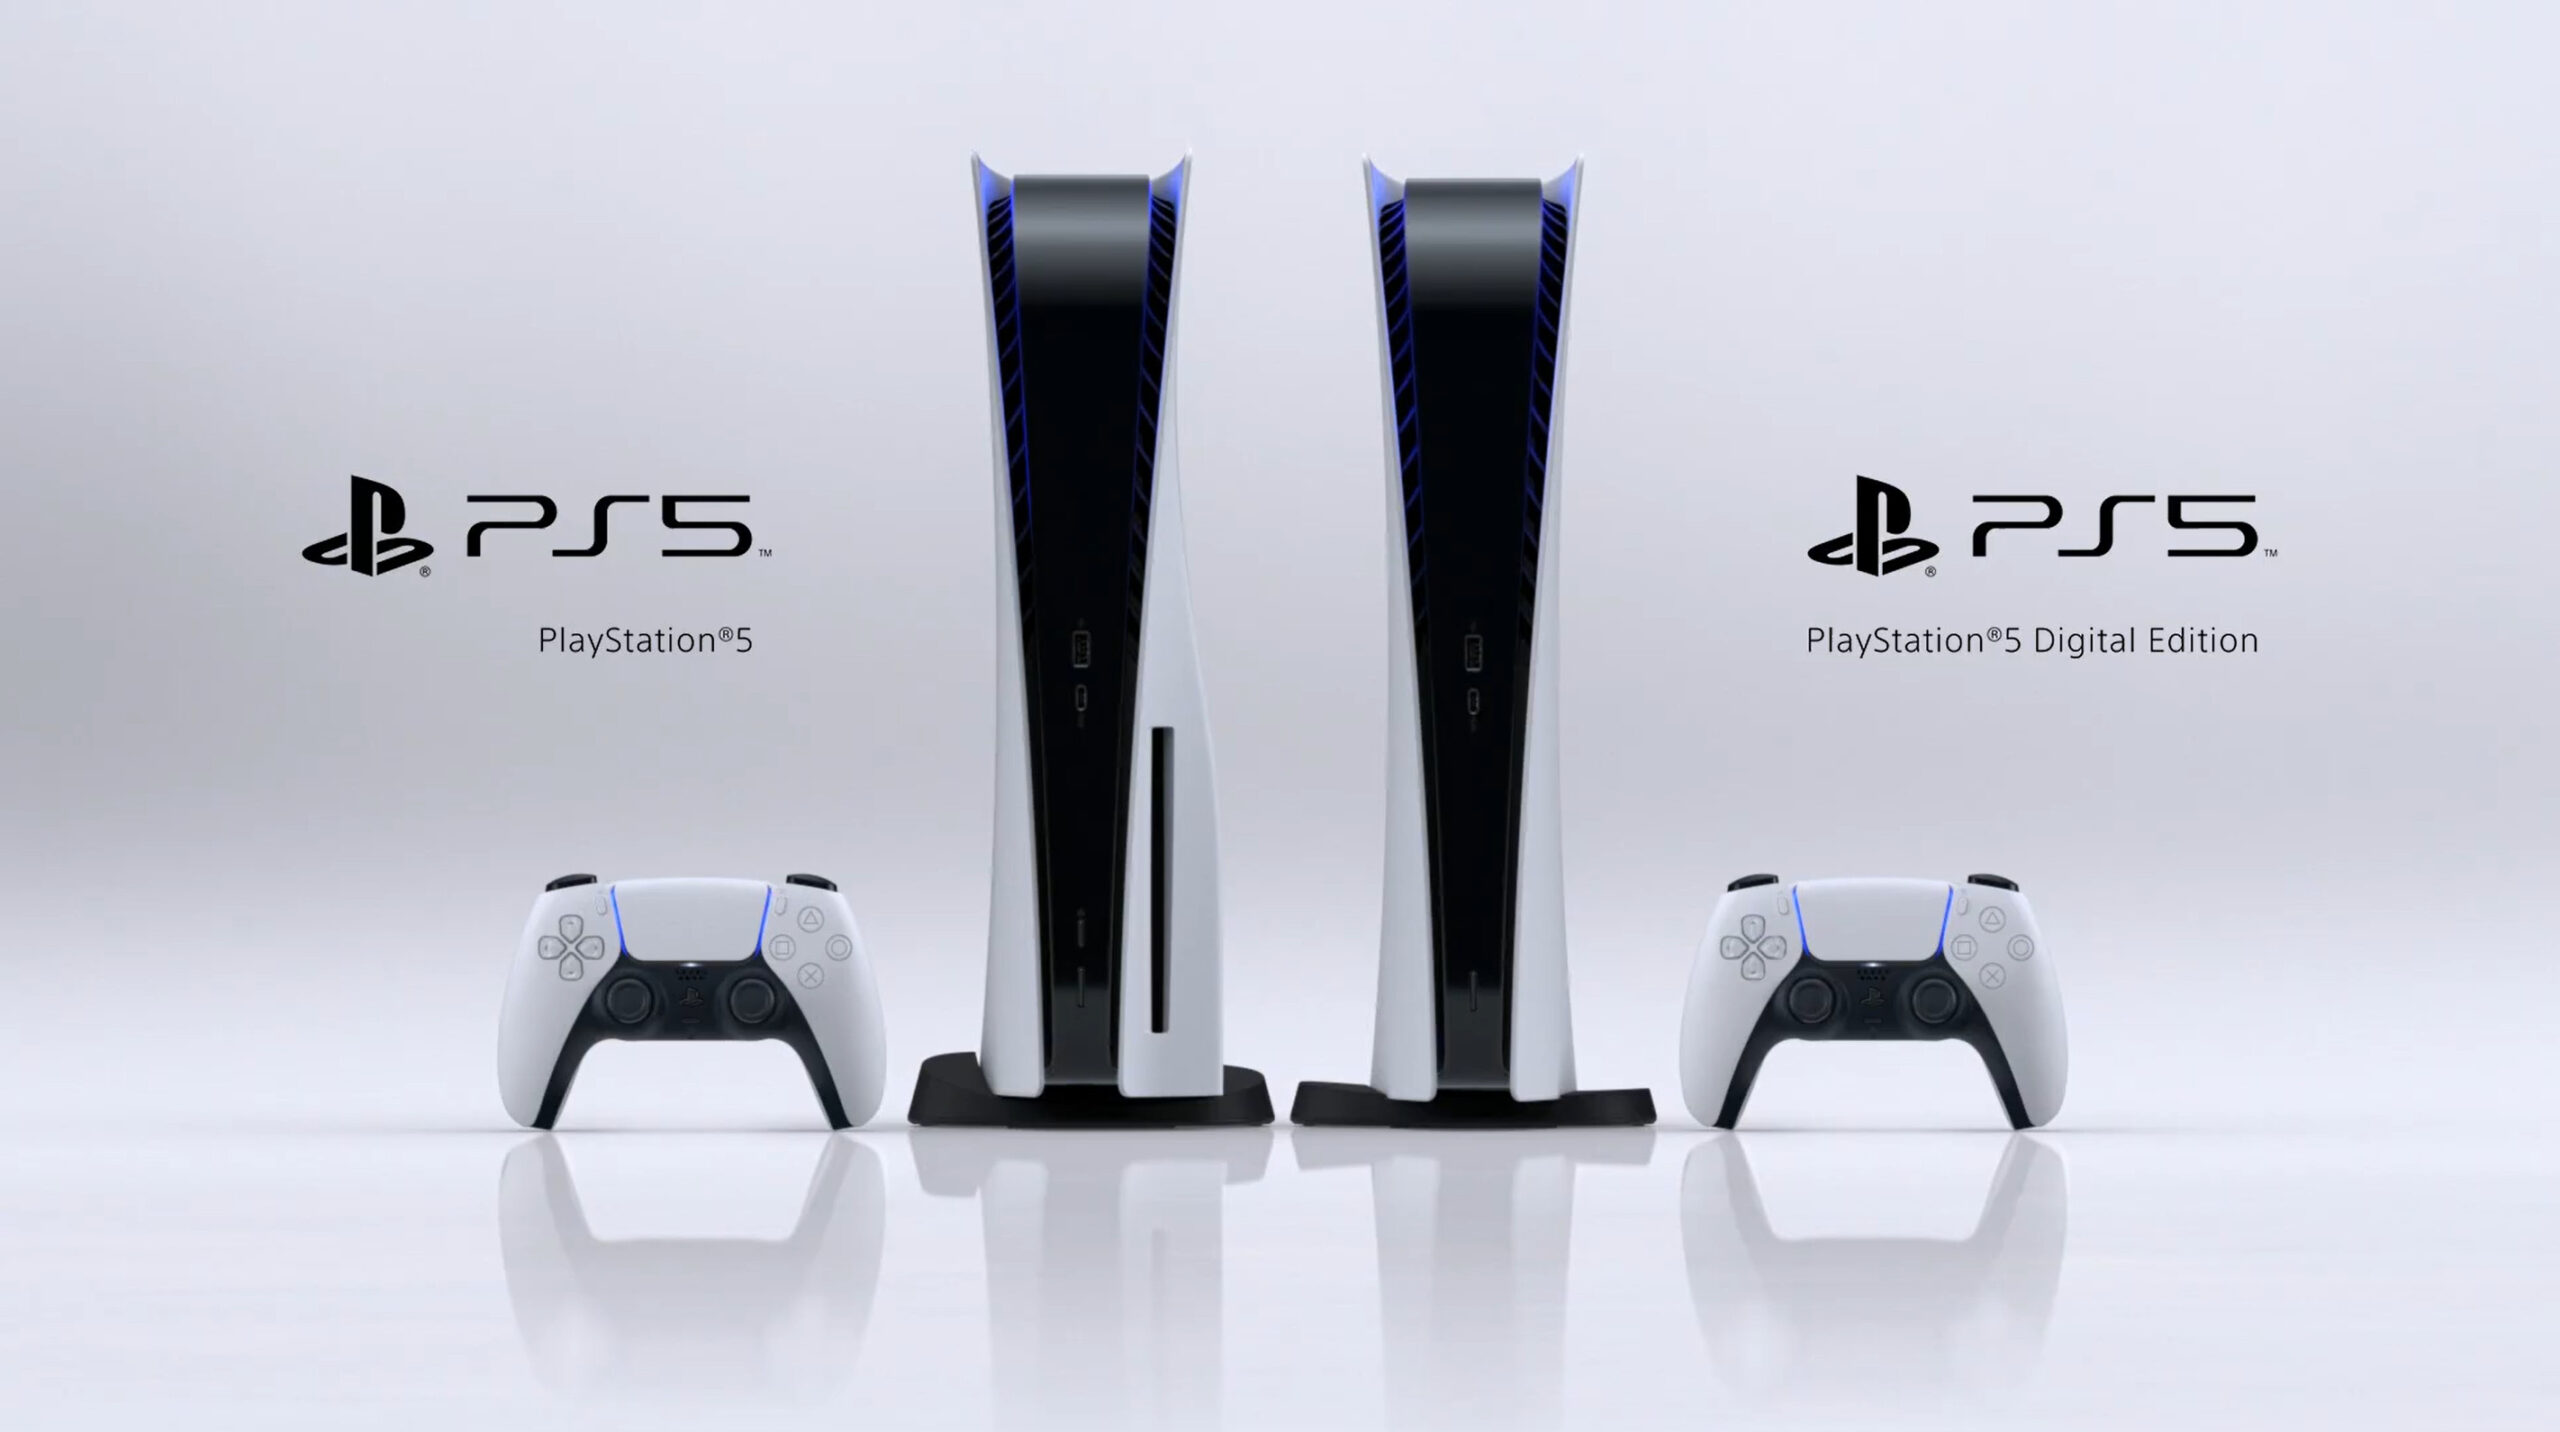 What is the PlayStation 5 going to look like?